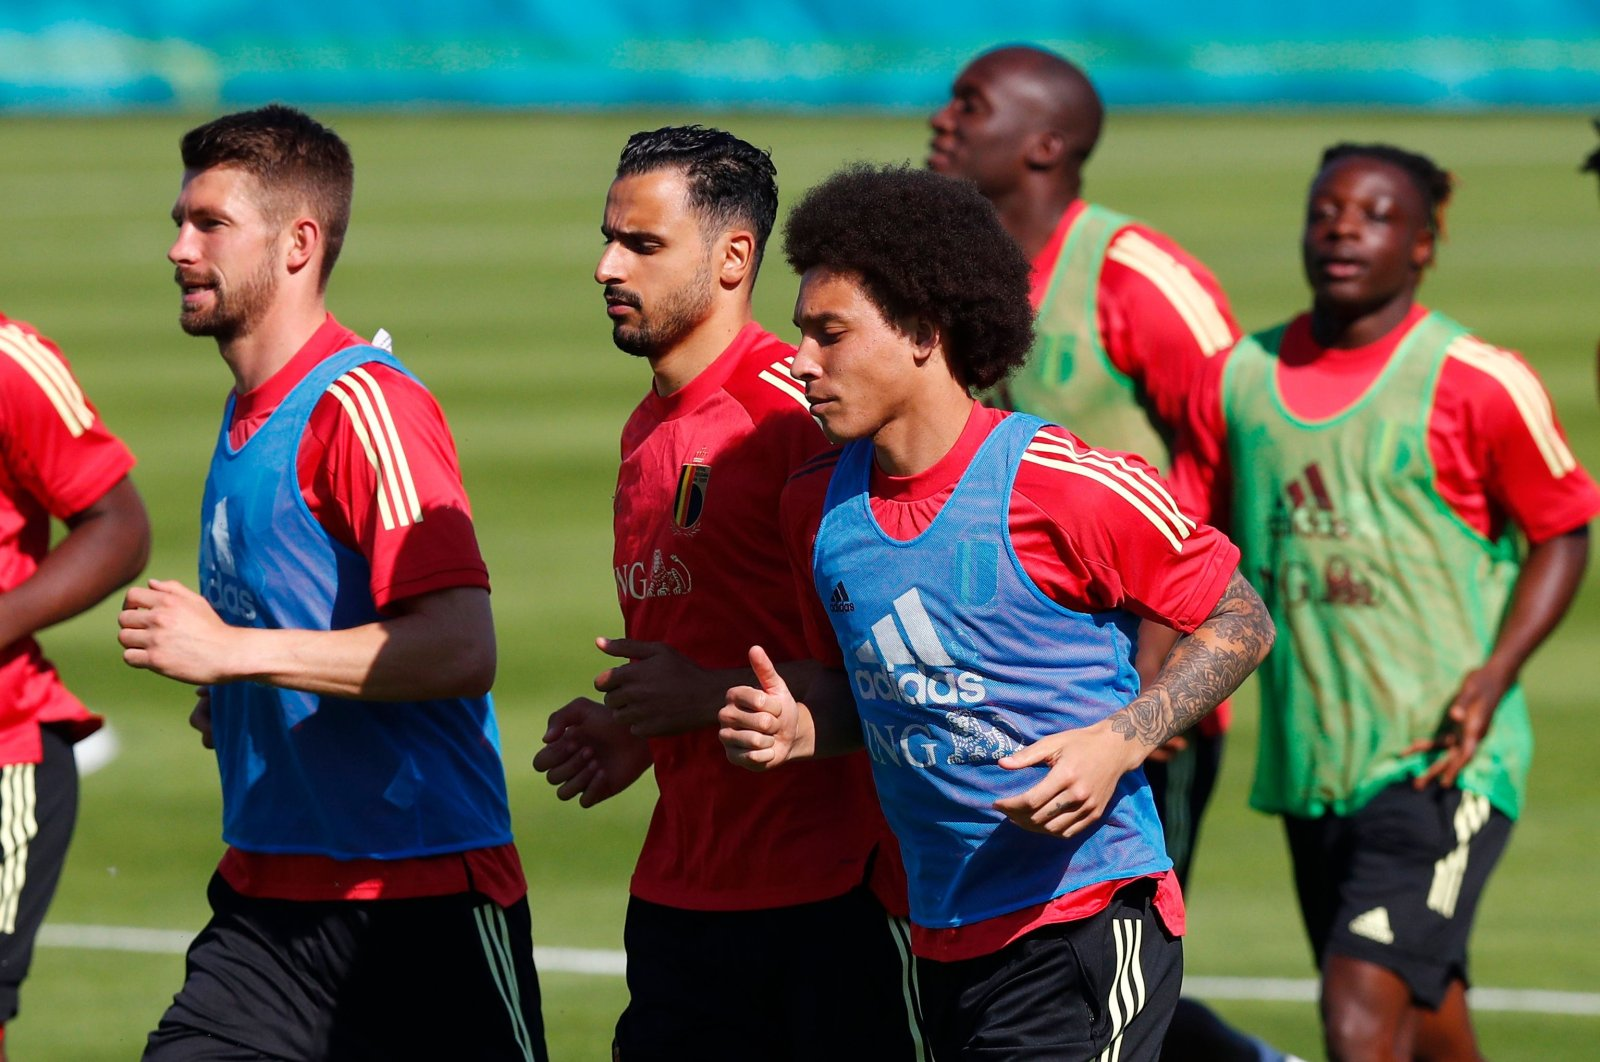 Belgium's Axel Witsel (R) and Nacer Chadli (C) with teammates during training, Tubize, Belgium, June 9, 2021. (Reuters Photo)